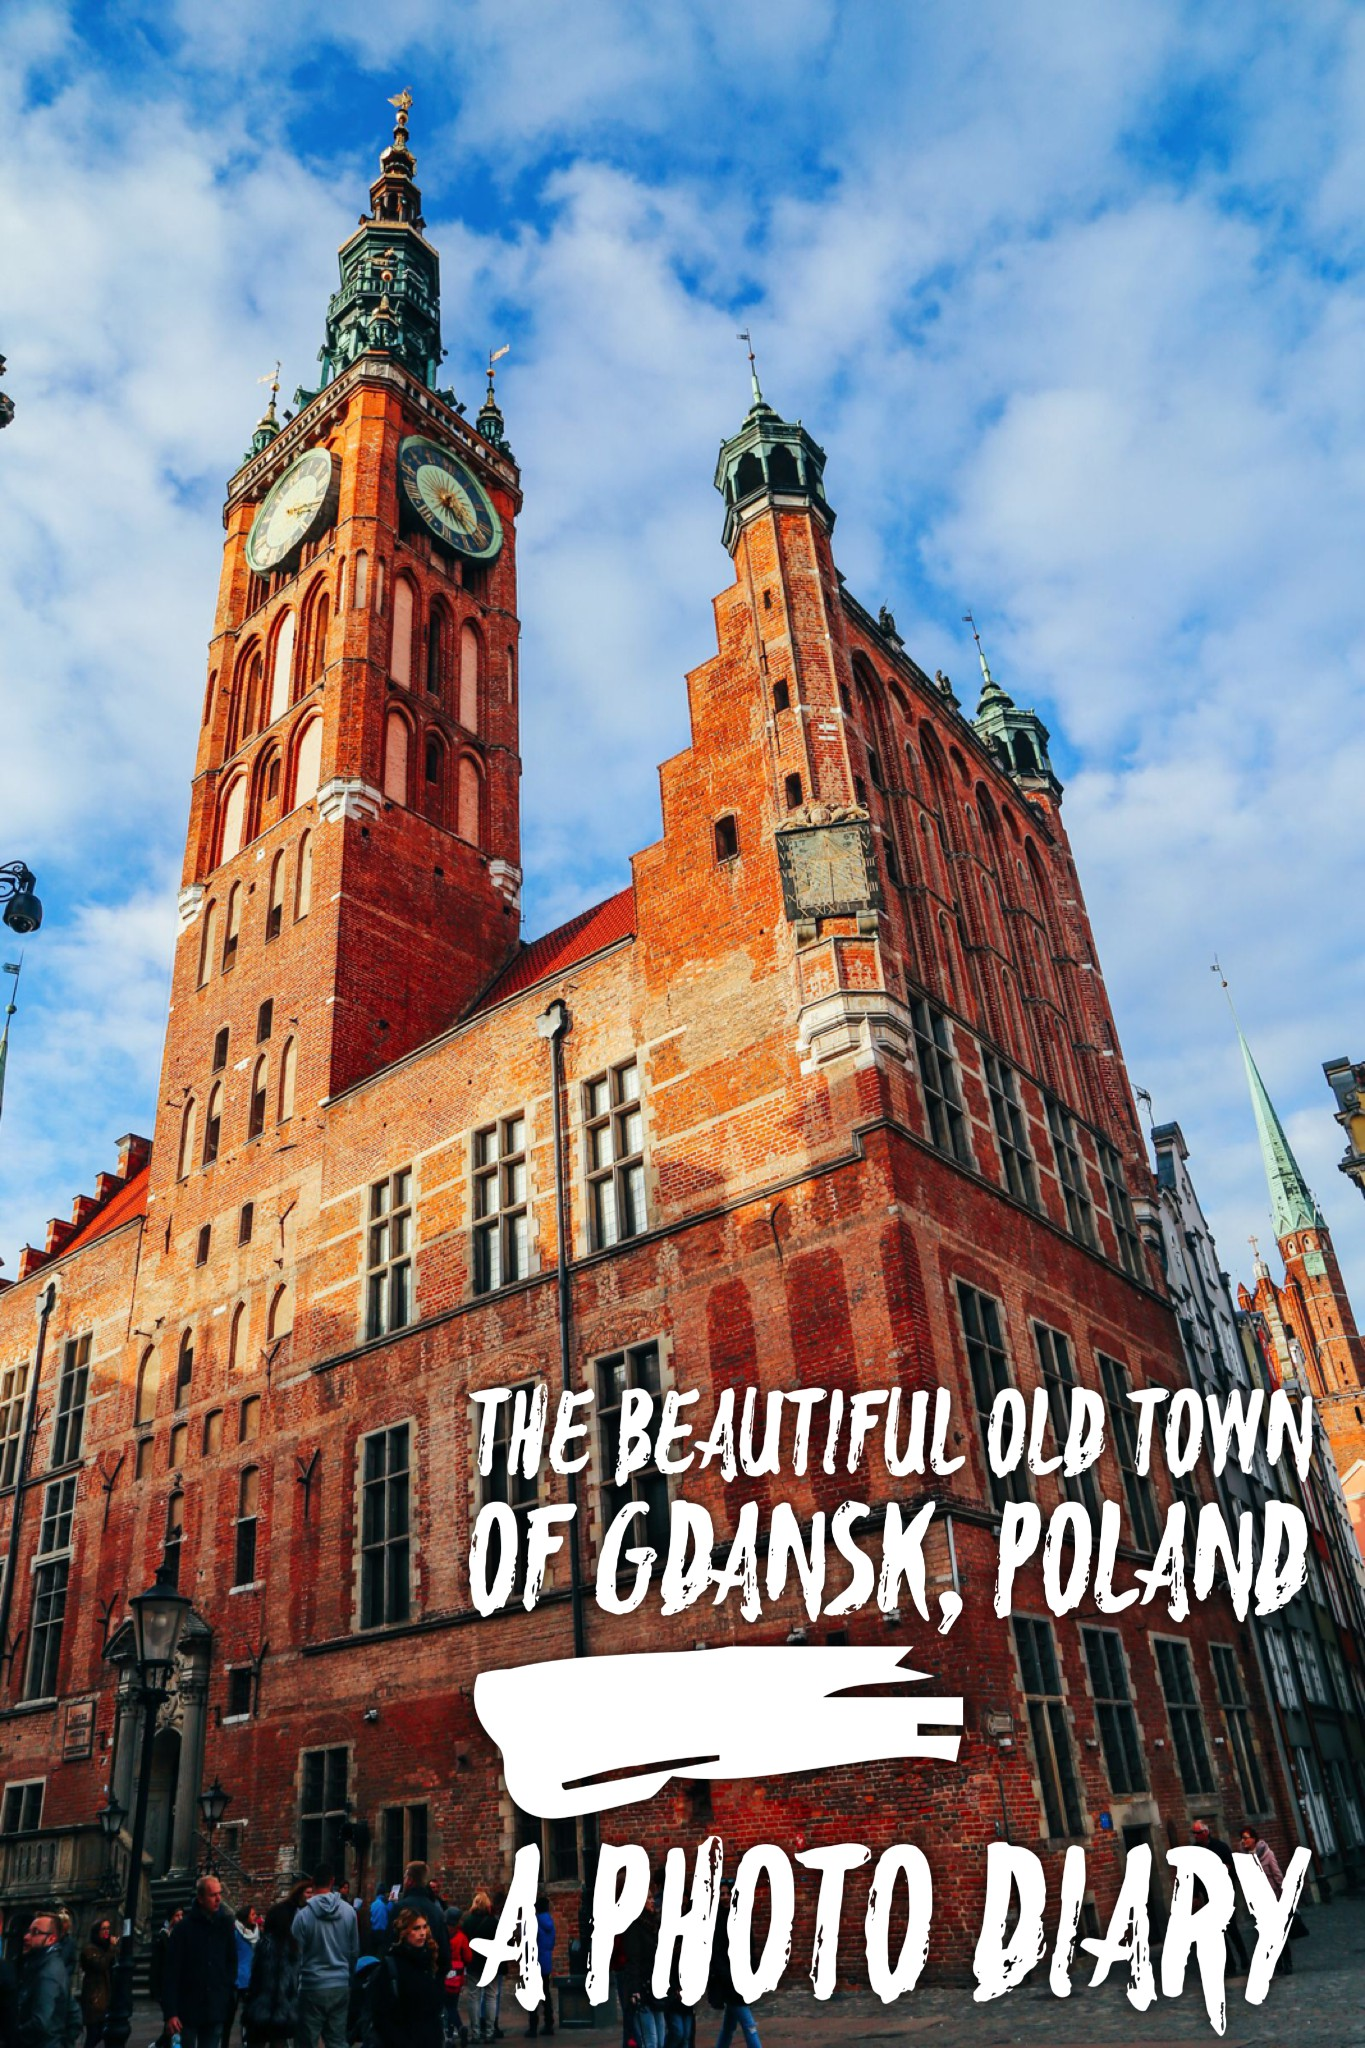 The Beautiful Old Town Of Gdansk, Poland  - A Photo Diary || PART 2